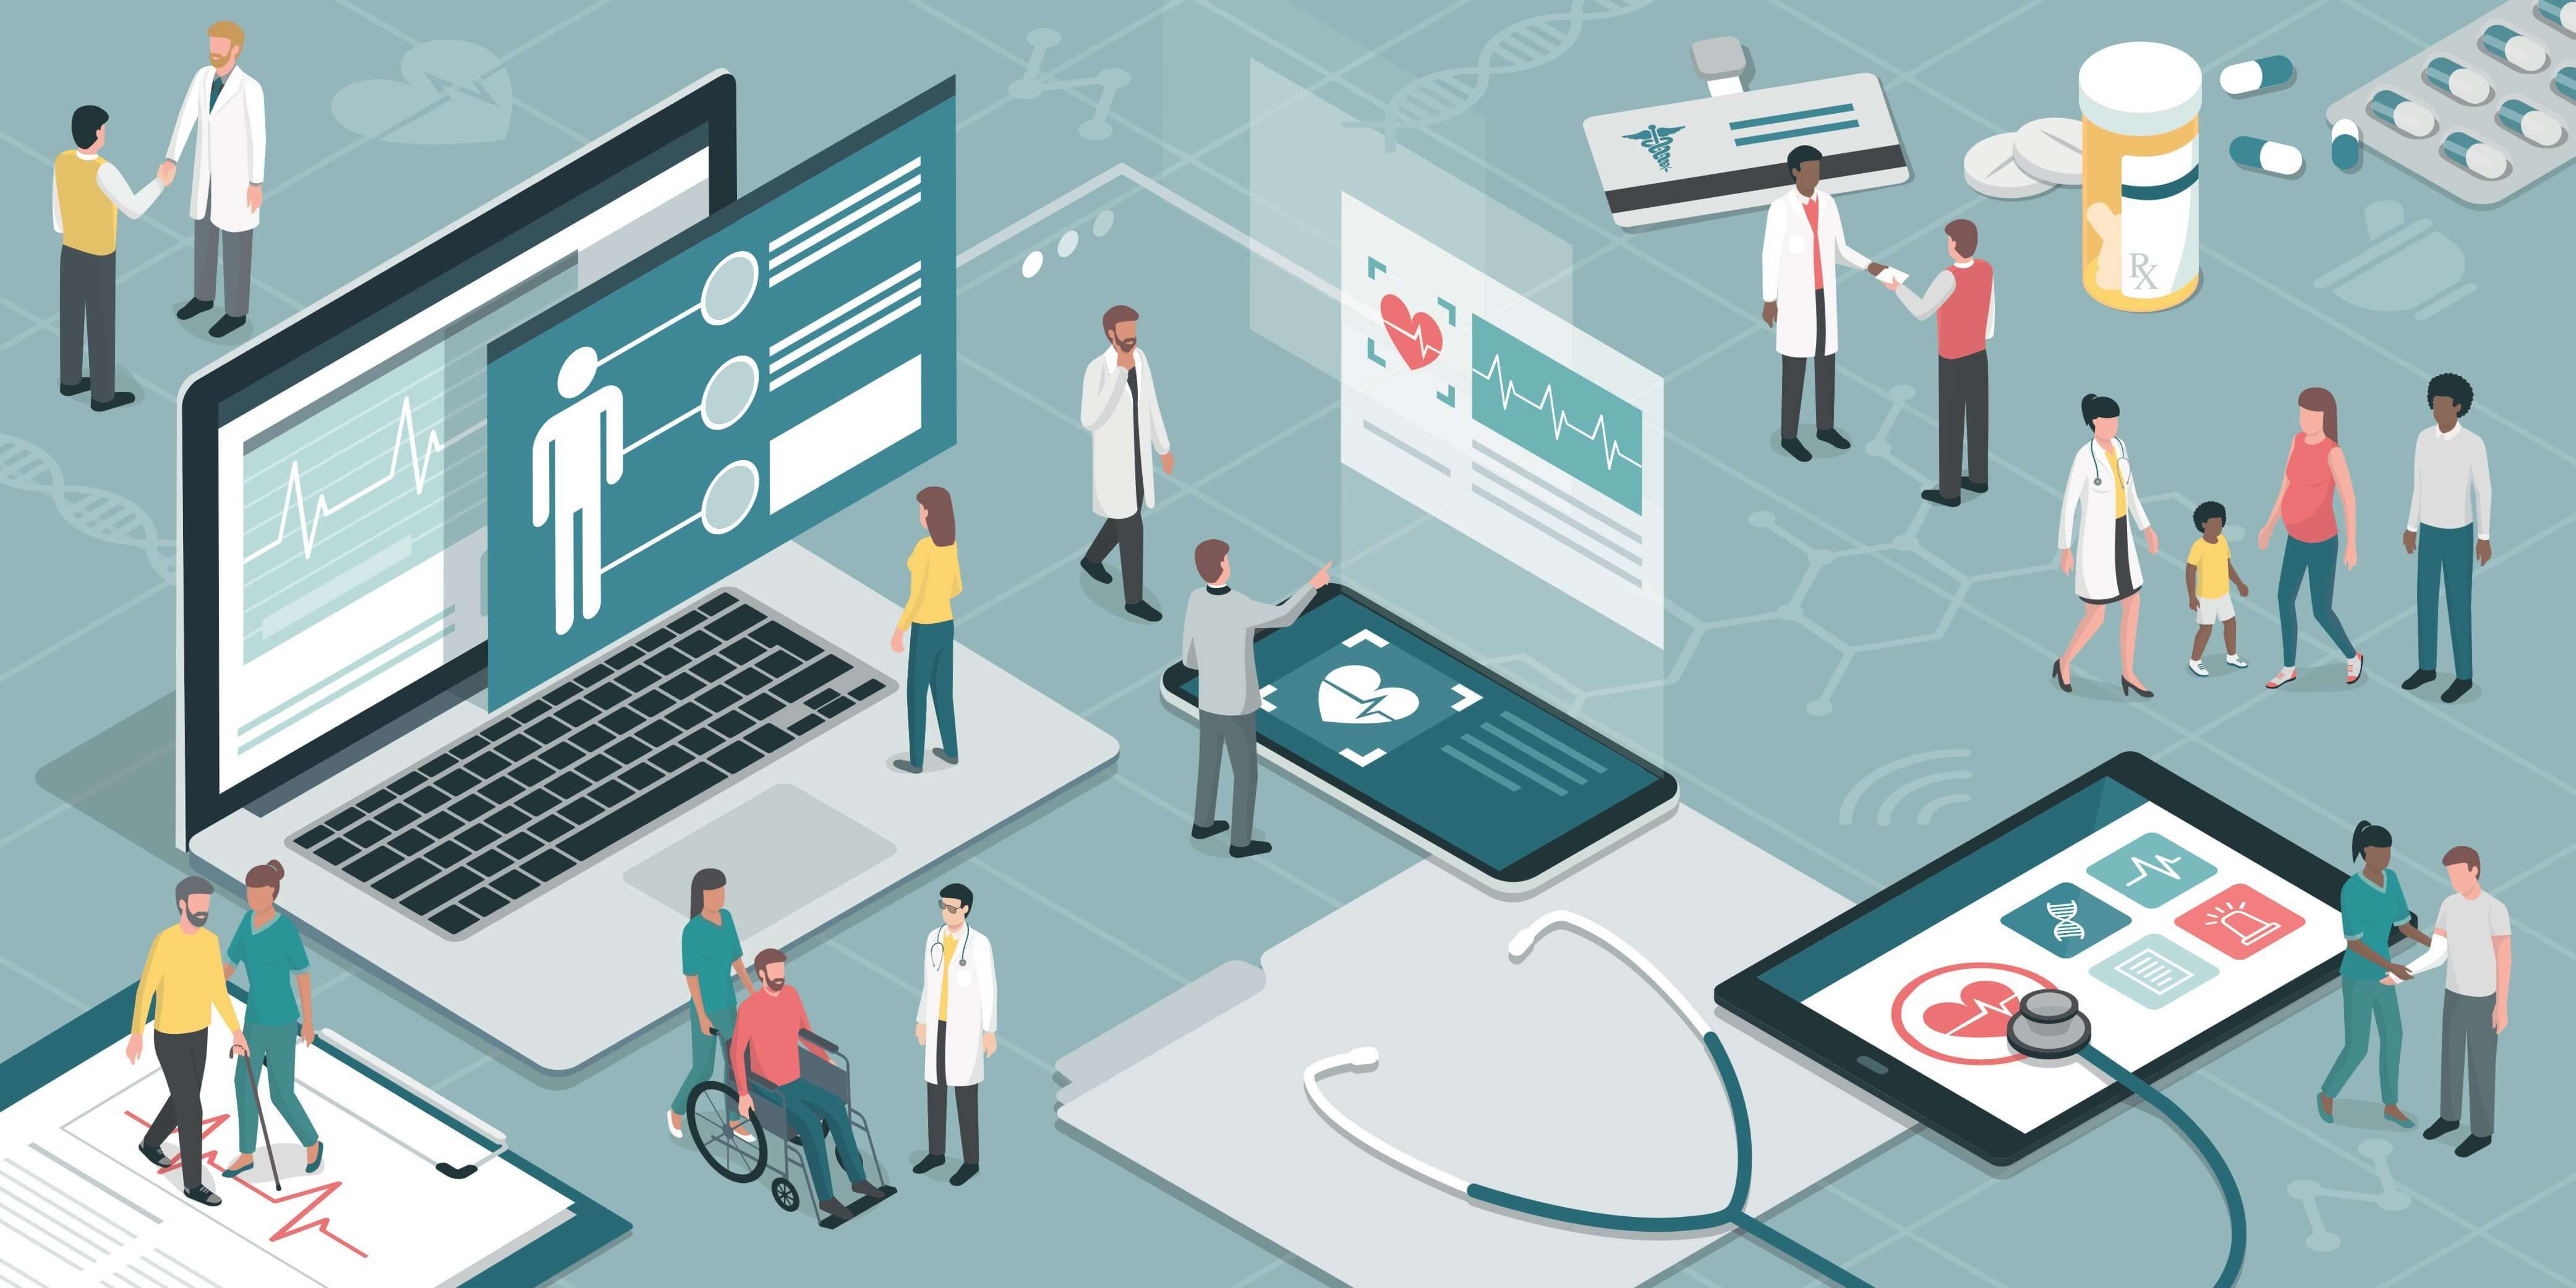 Artificial Intelligence in Healthcare Market (AI) Growth Analysis and Global Overview | IBM, NEC, Nuance, Microsoft Corp., Ipsoft, Rocket Fuel